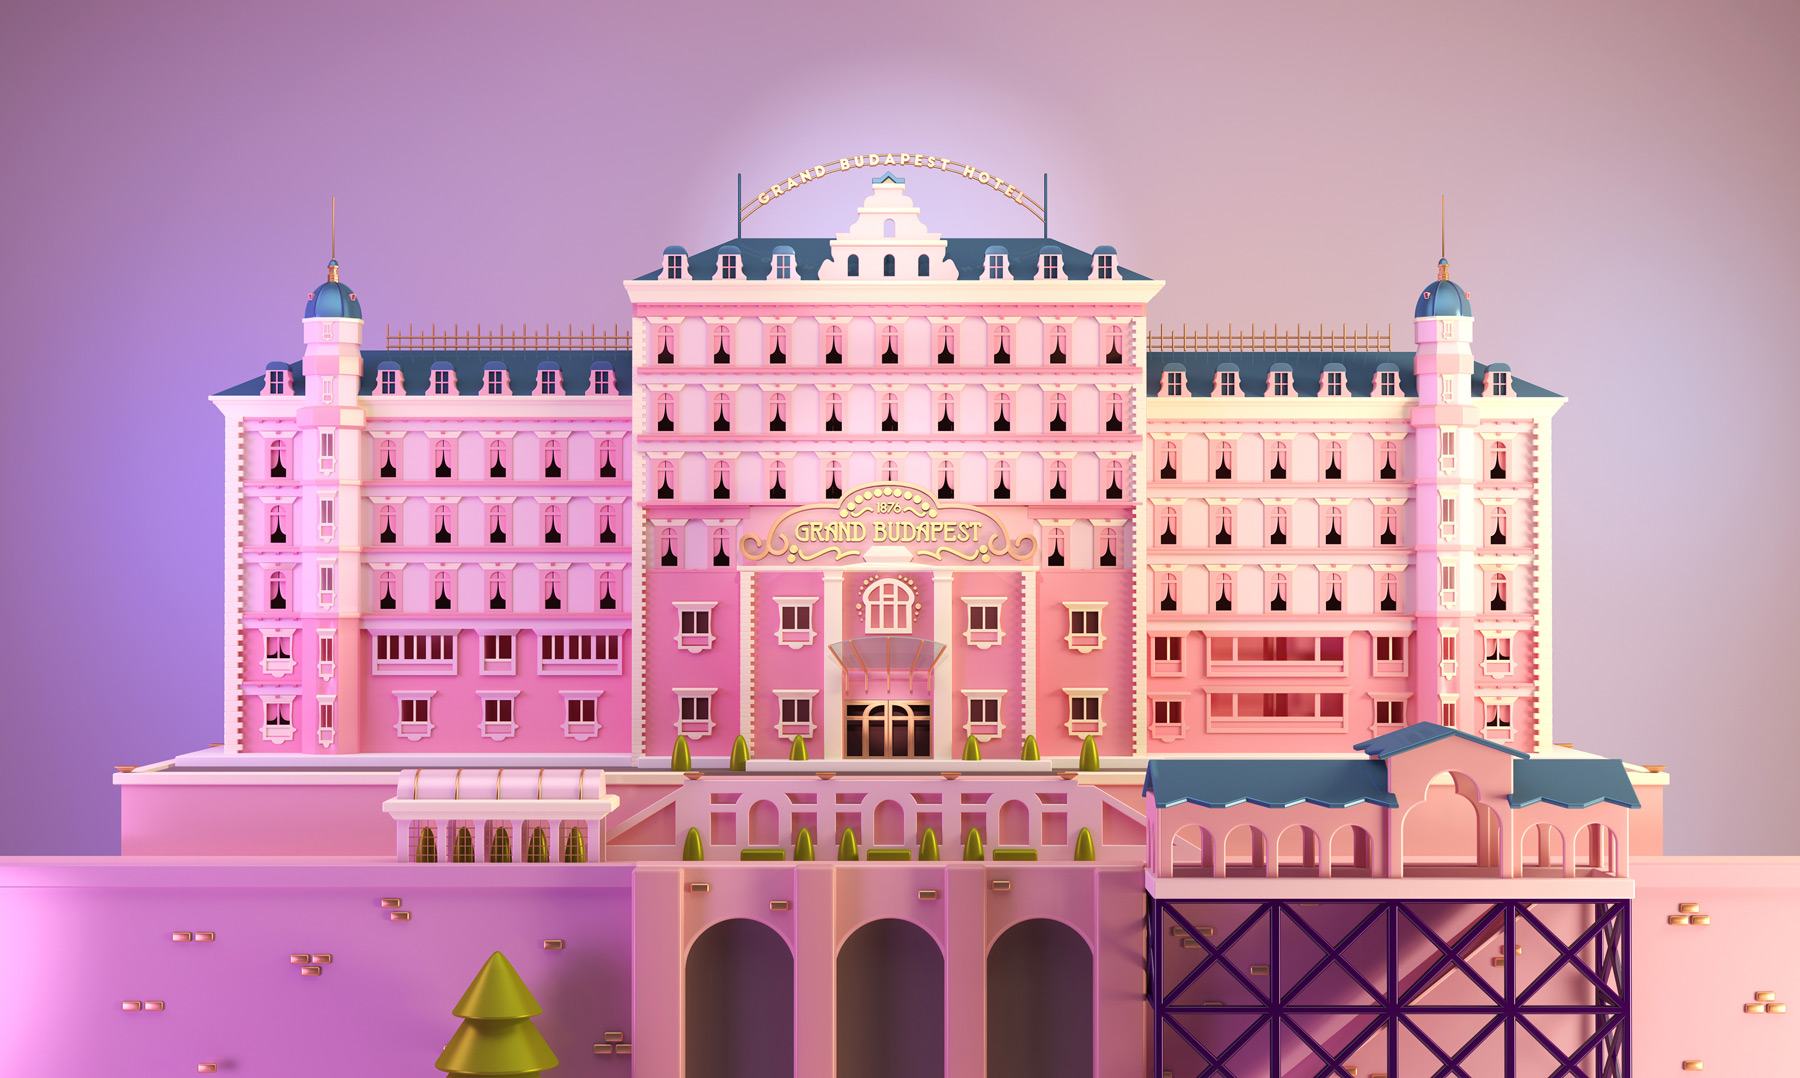 Charming Illustration Tribute to Wes Anderson